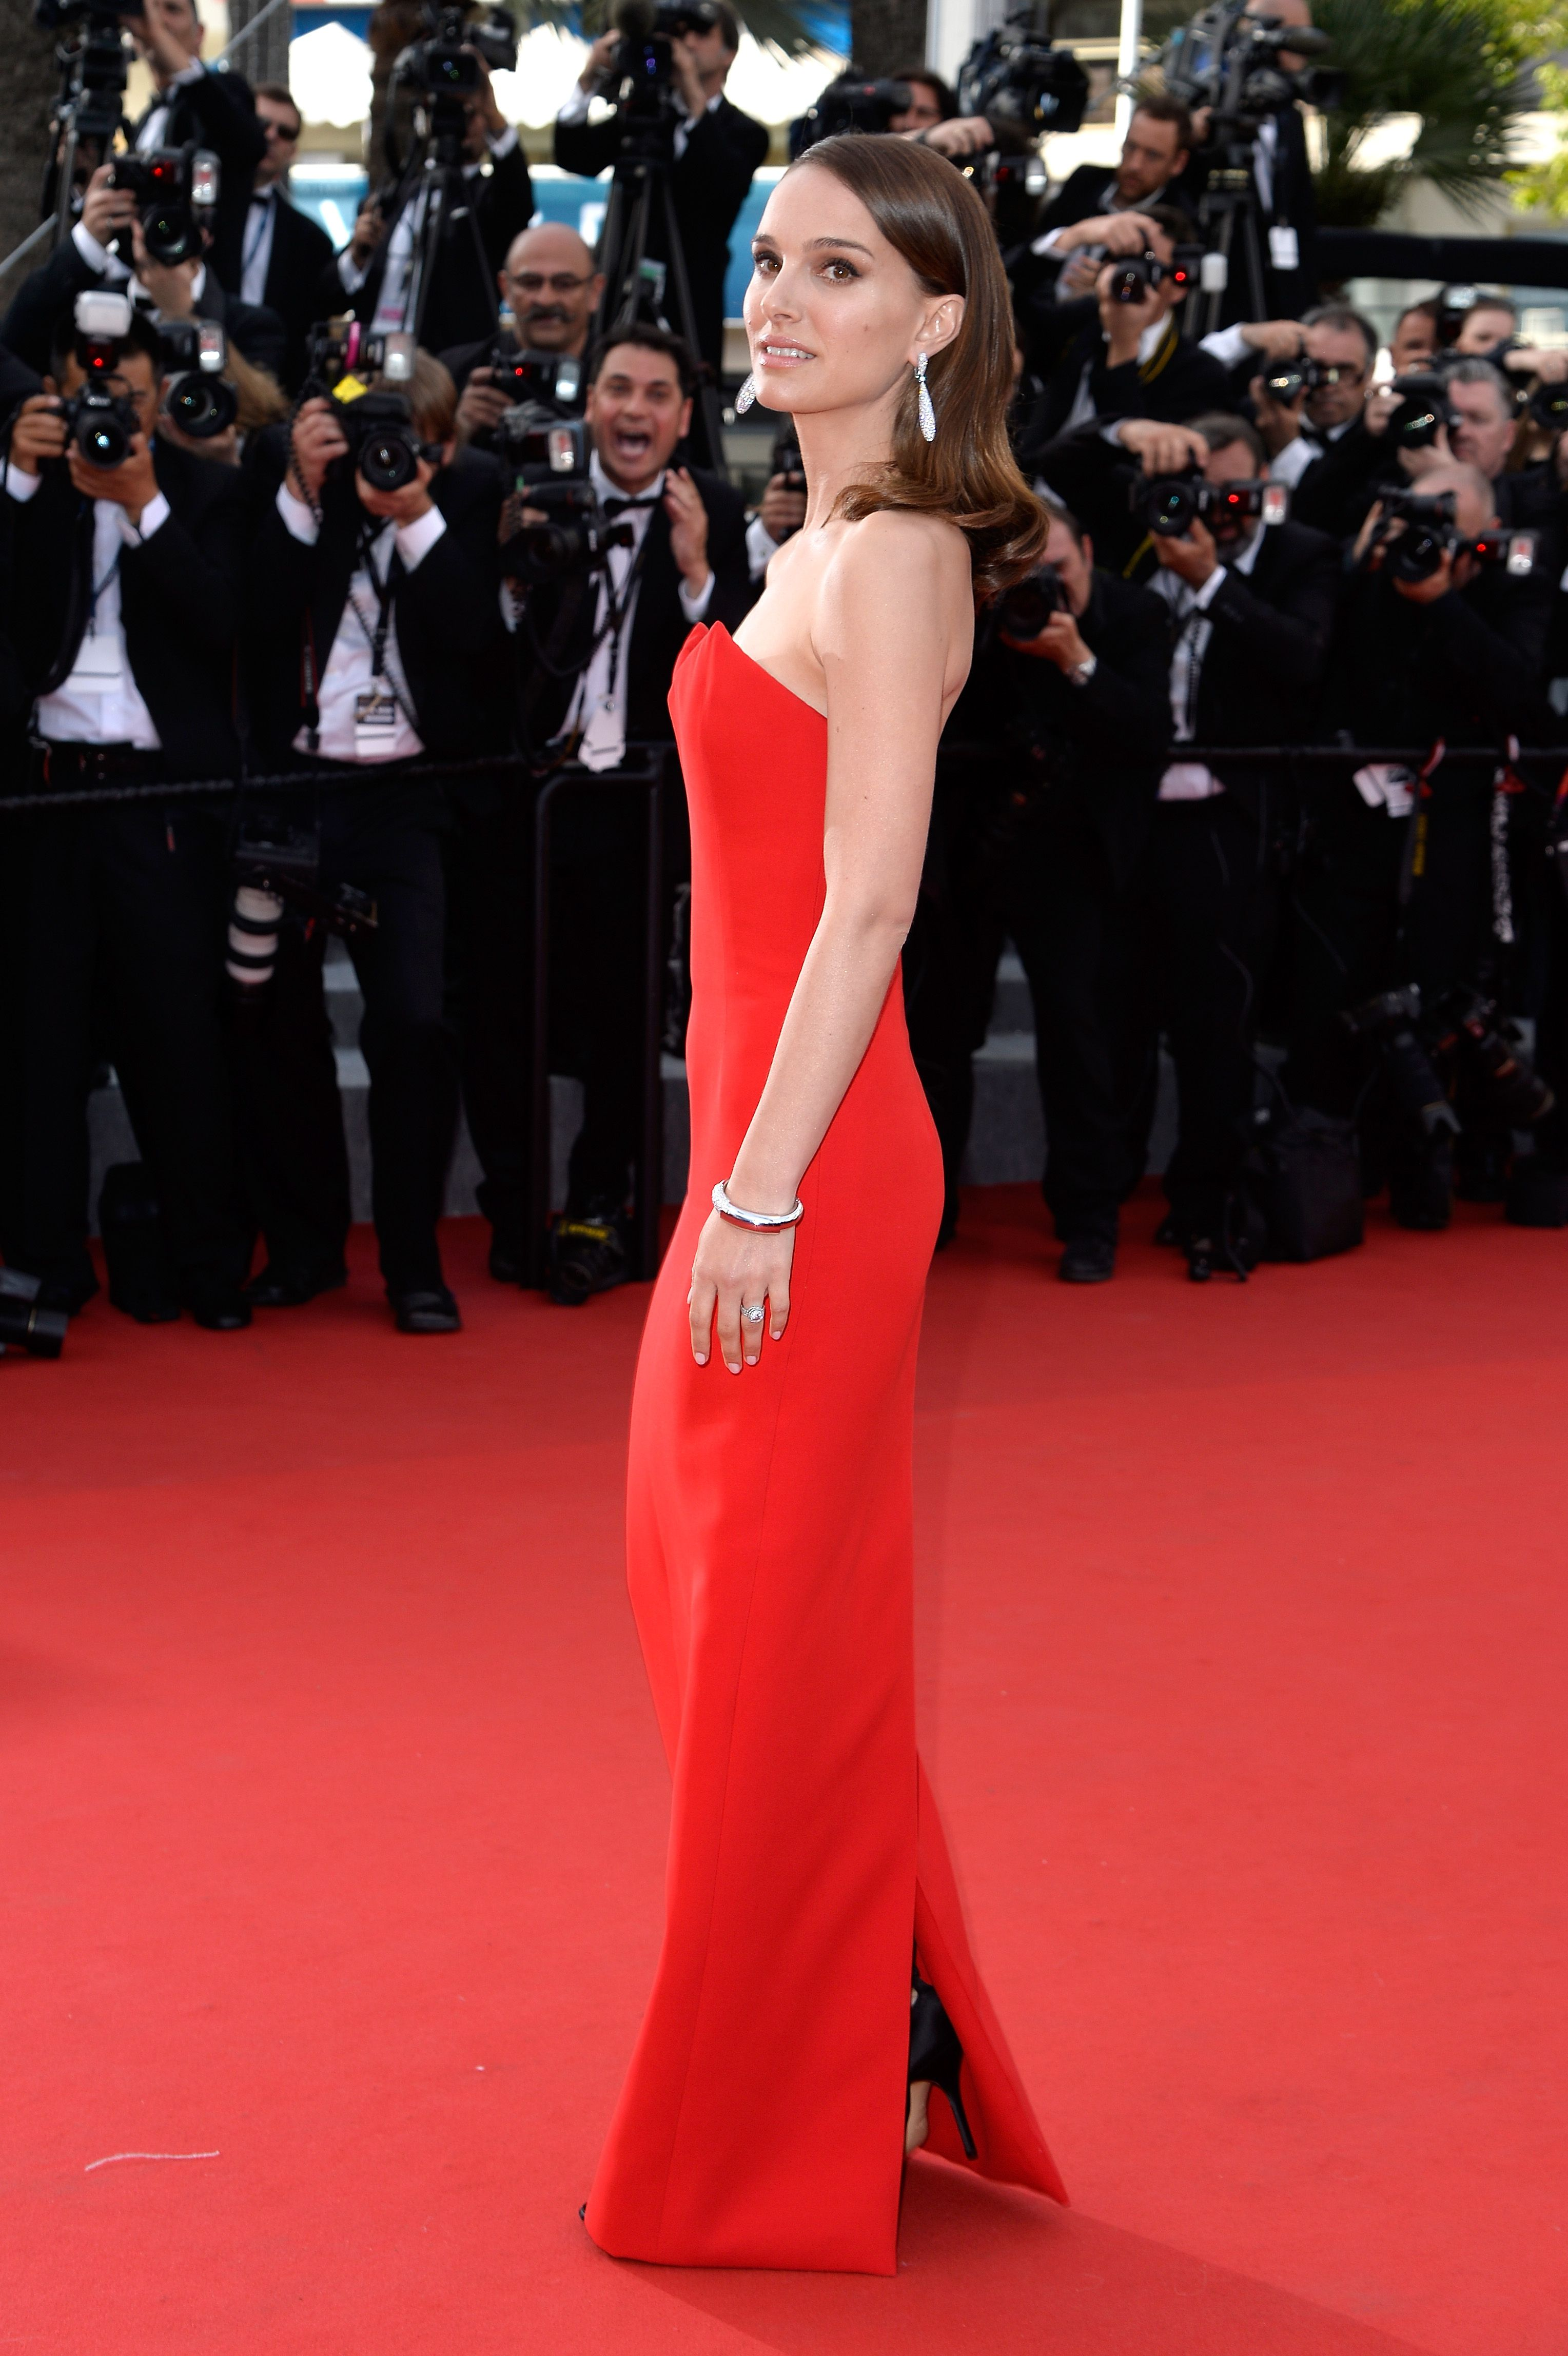 Natalie Portman attends the opening ceremony and premiere of 'La Tete Haute during the 68th annual Cannes Film Festival on May 13, 2015 in Cannes, France.